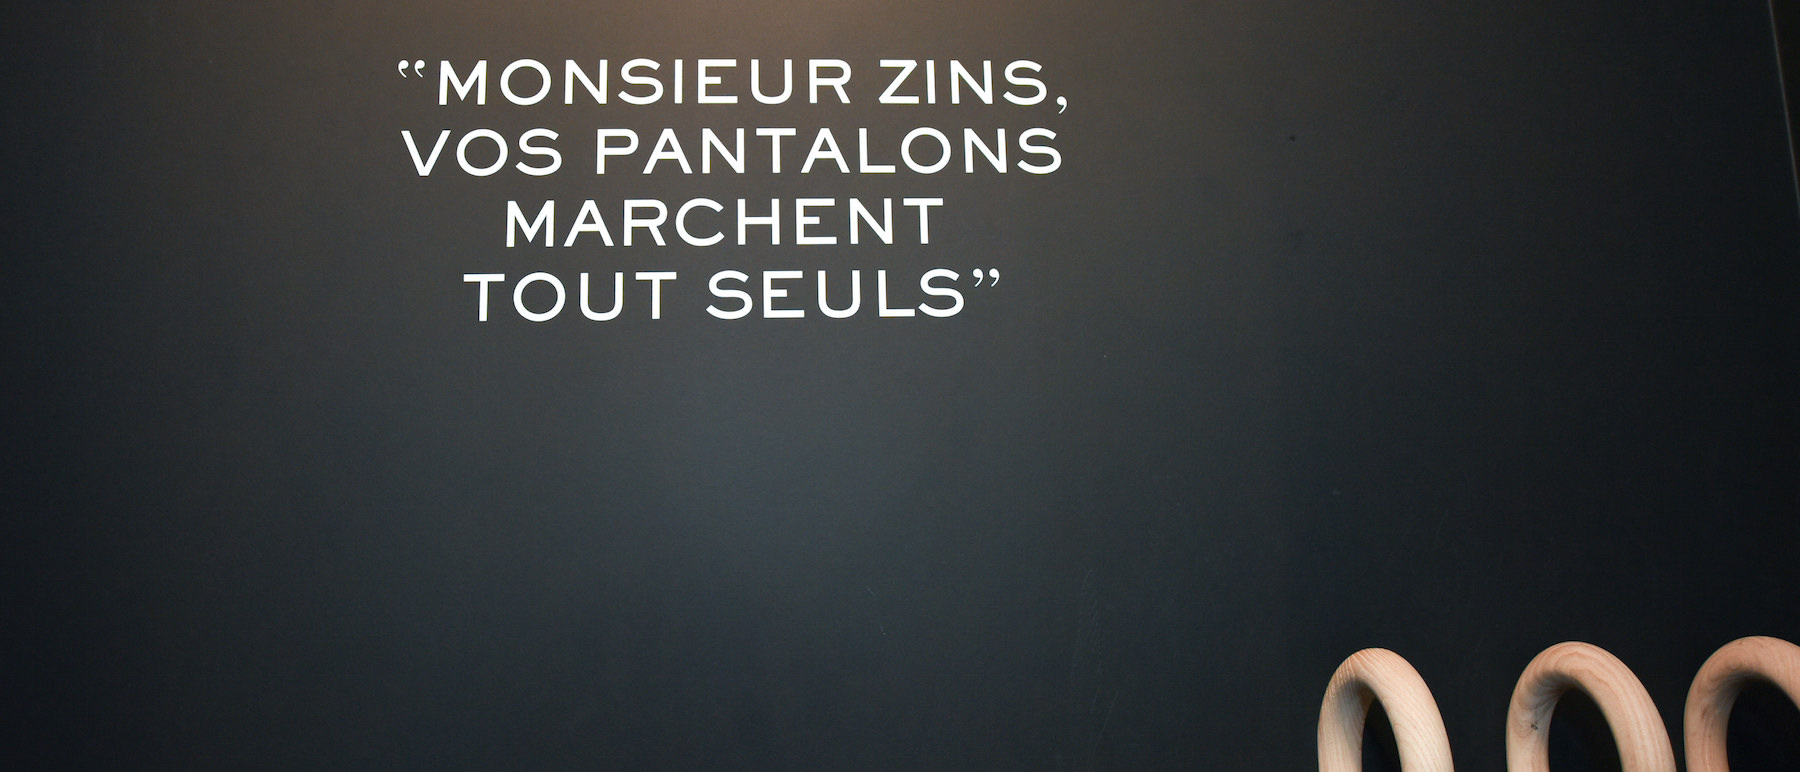 citation bernard zins